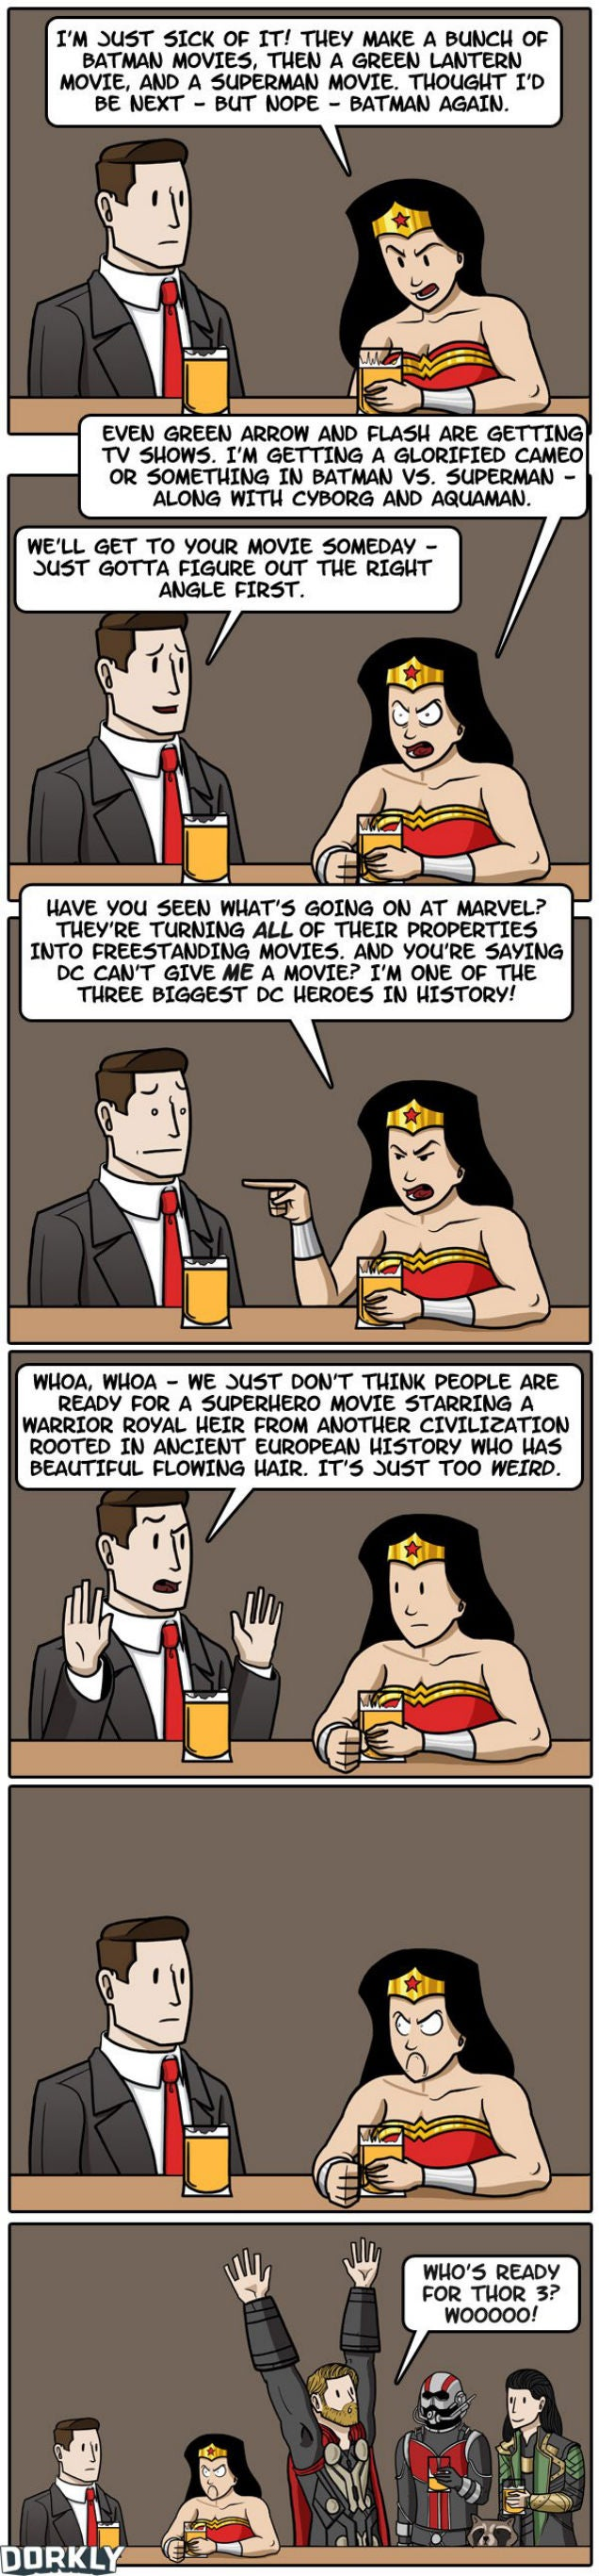 One Reason There Still Isn't A Wonder Woman Movie